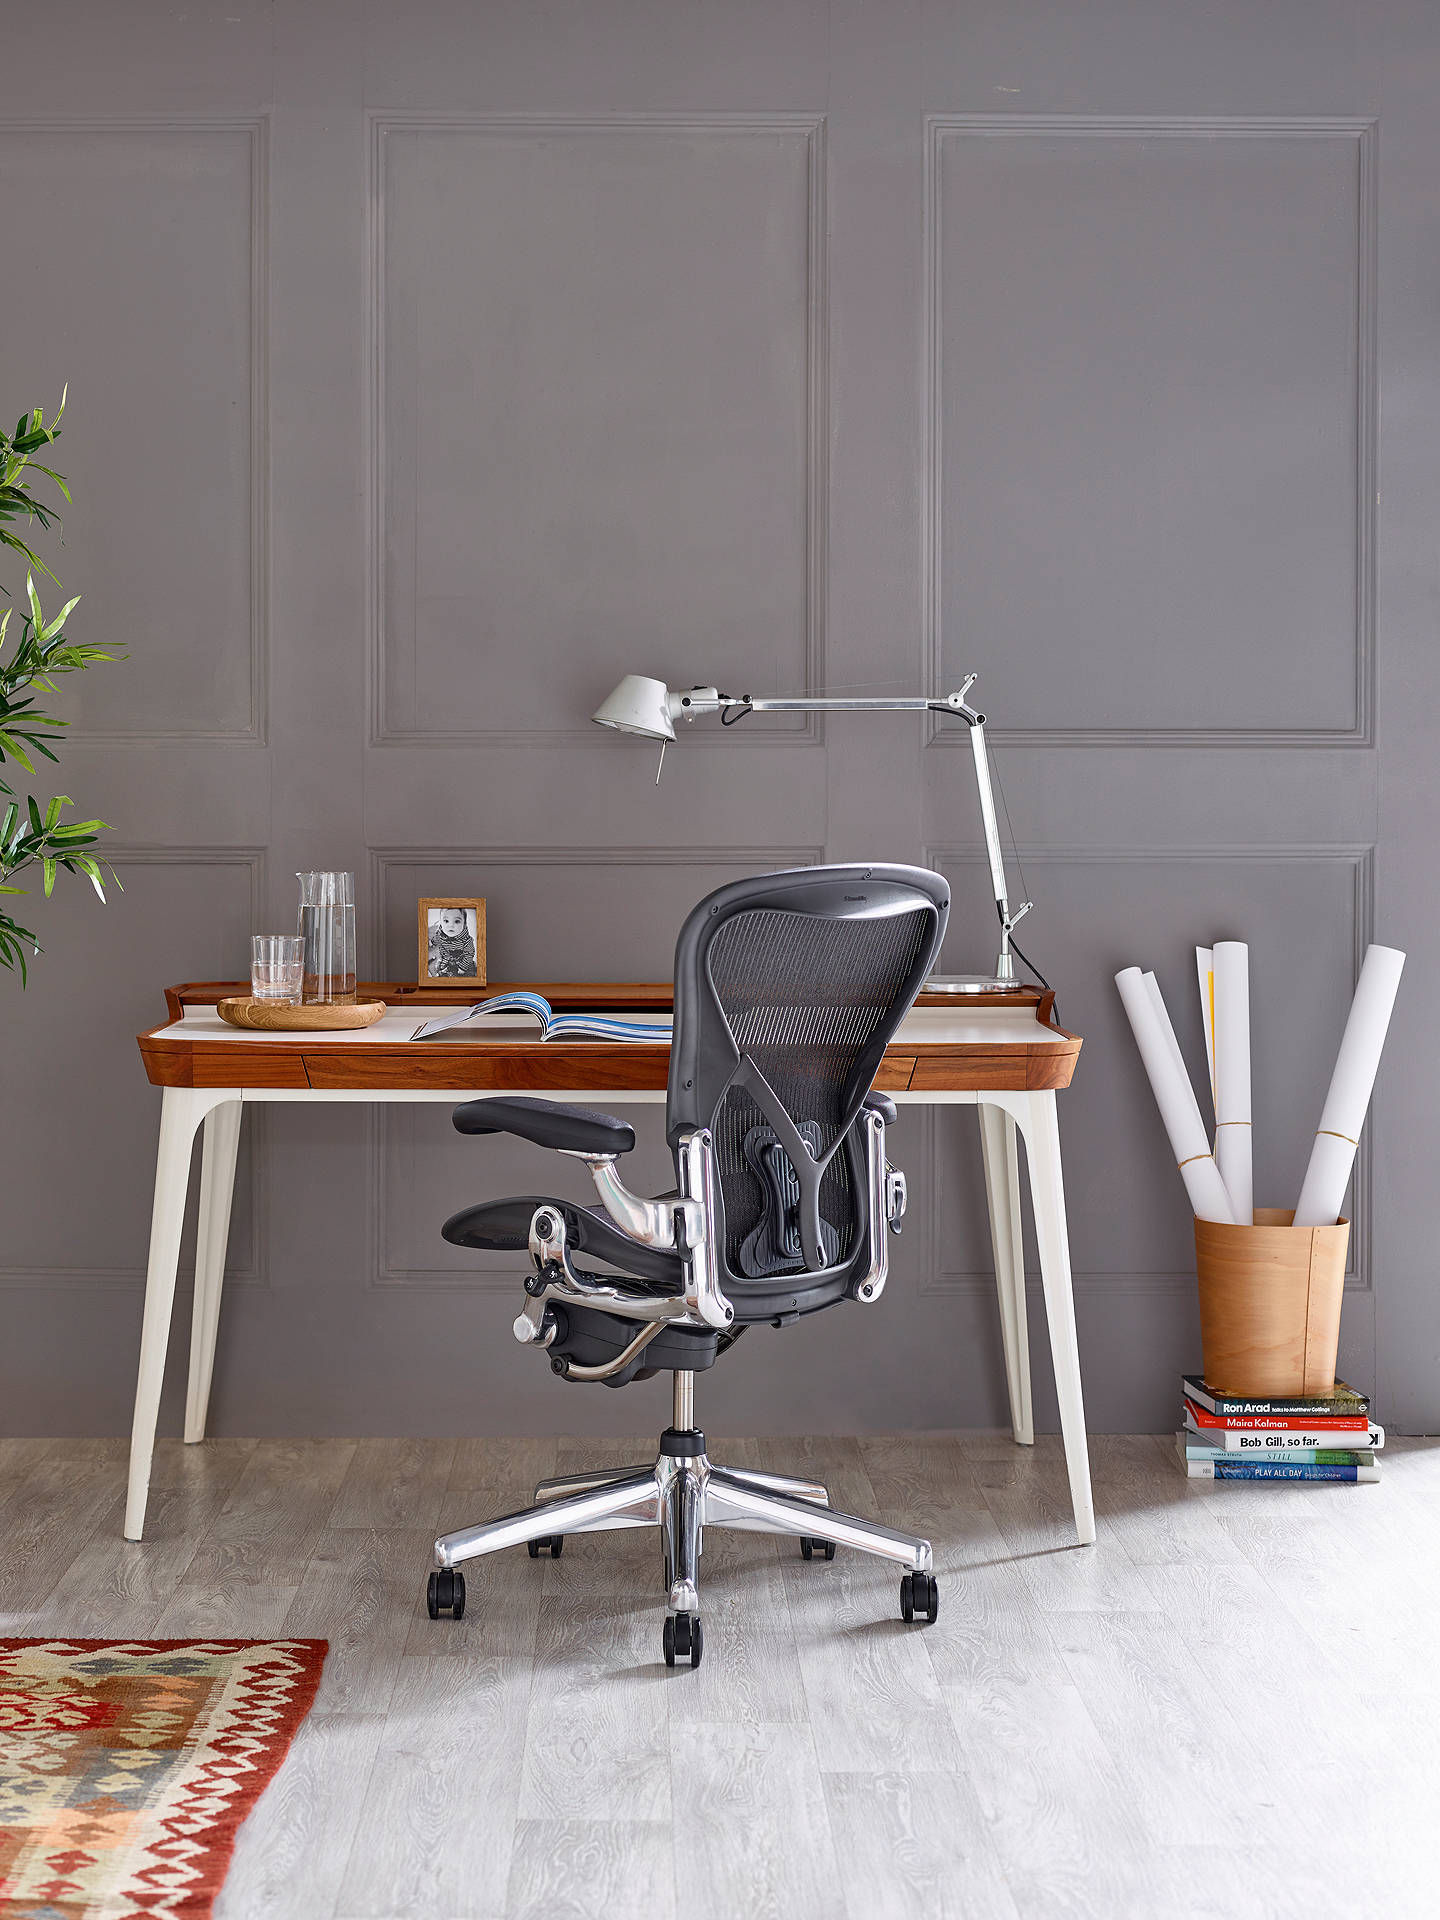 Surprising Herman Miller Aeron Office Chair Graphite Polished Aluminium Creativecarmelina Interior Chair Design Creativecarmelinacom